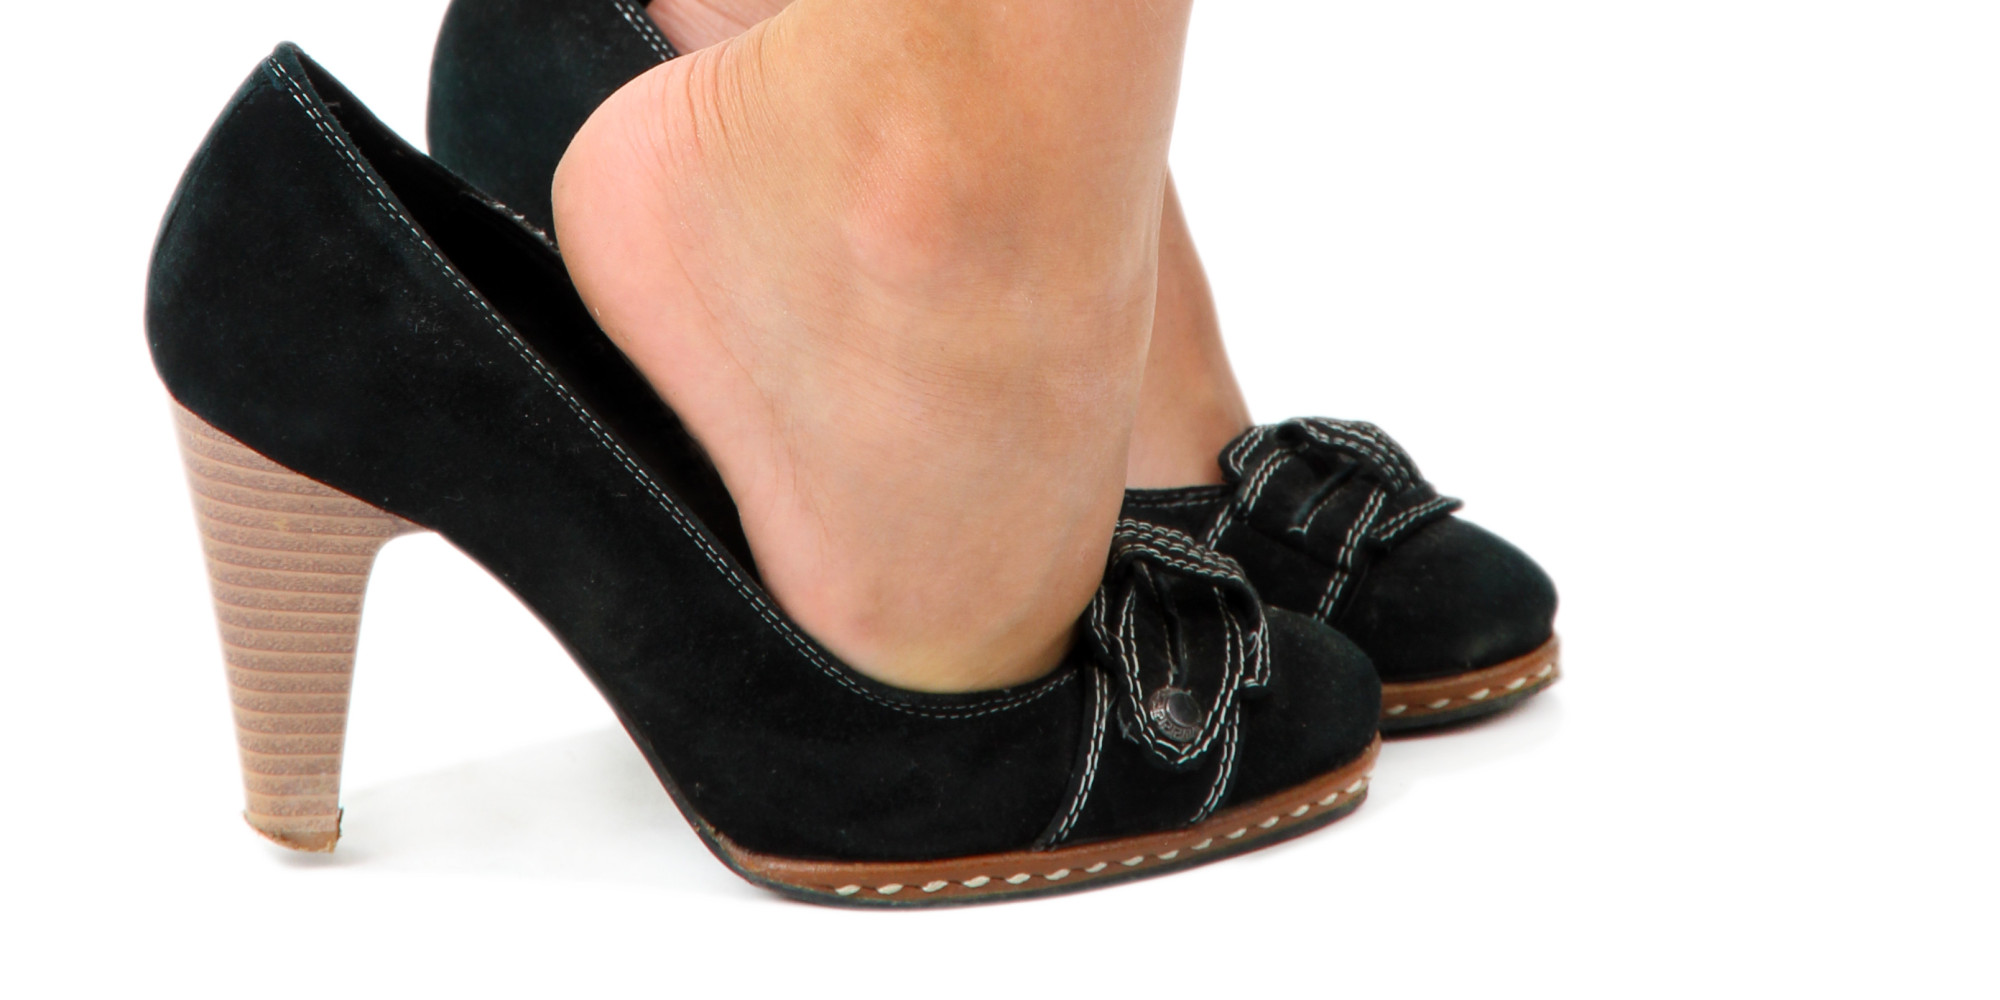 Adult Shoes For Small Feet 83